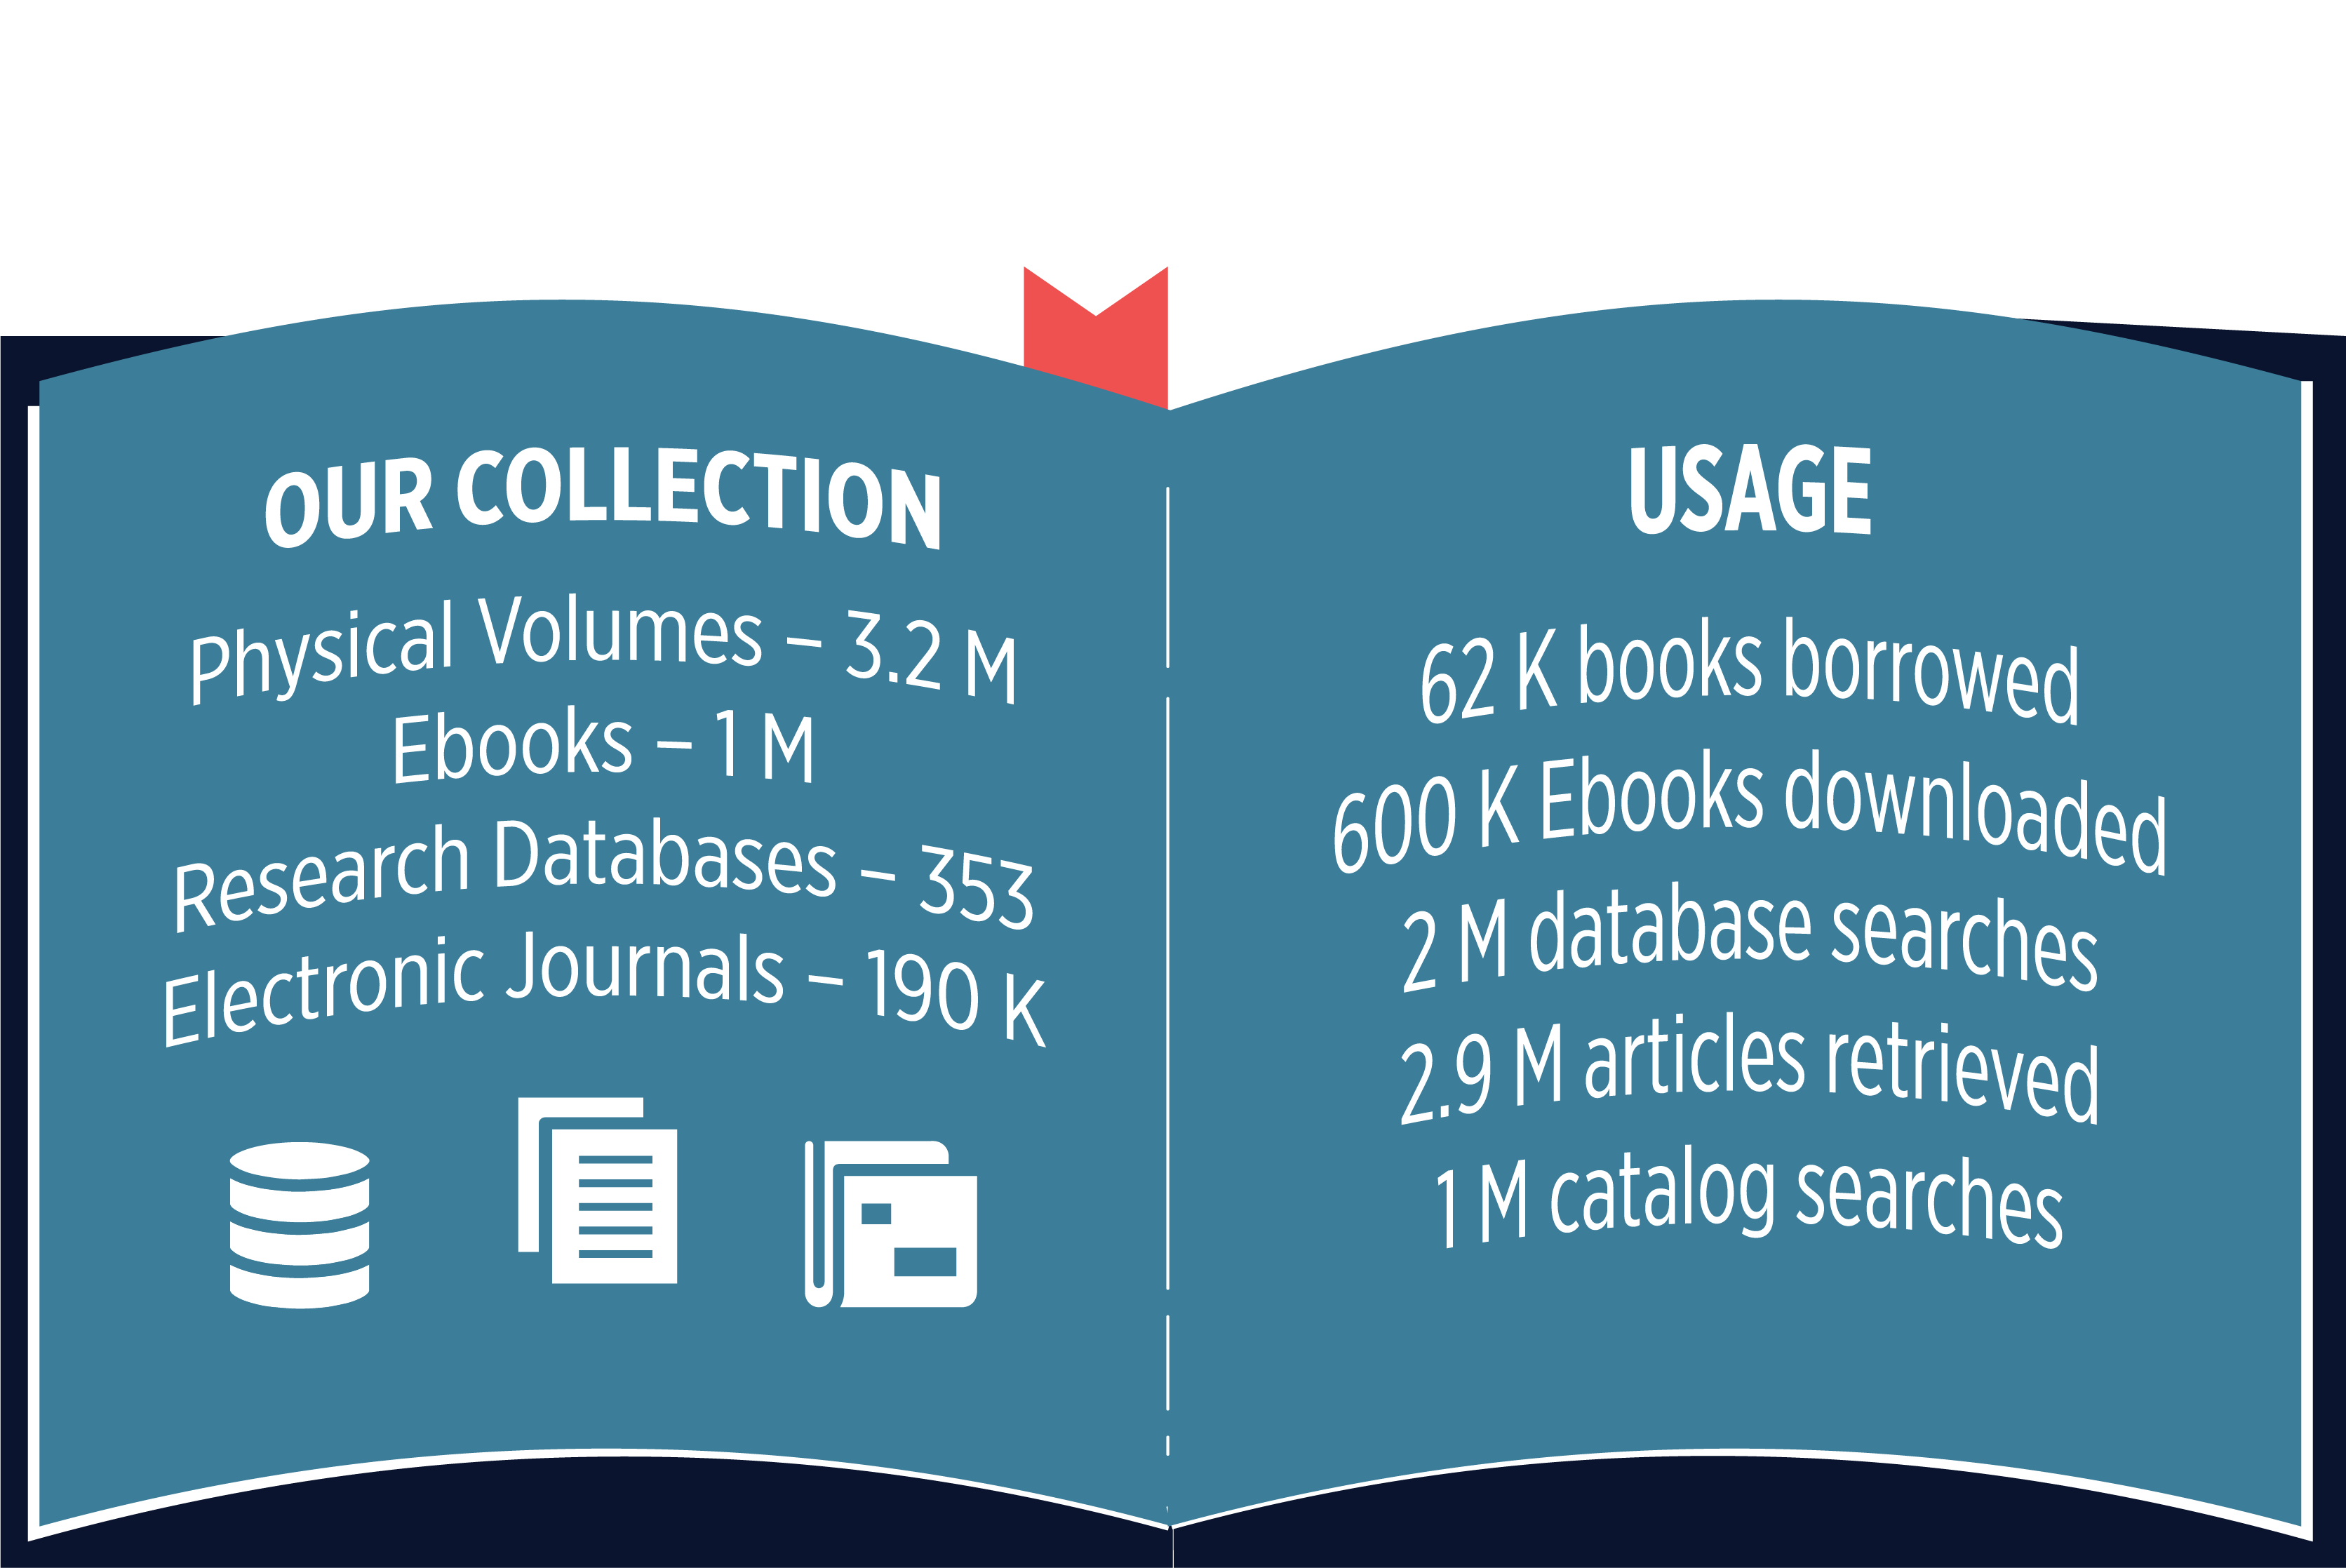 Image of book with collection statistics, page one text: Our Collection, Physical Volumes – 3.2 M, Ebooks – 1 M, Research Databases – 353, Electronic Journals – 190 K. Page two text: Usage, 62 K books borrowed, 600 K Ebooks downloaded, 2 M database searches, 2.9 M articles retrieved, 1 M catalog searches.